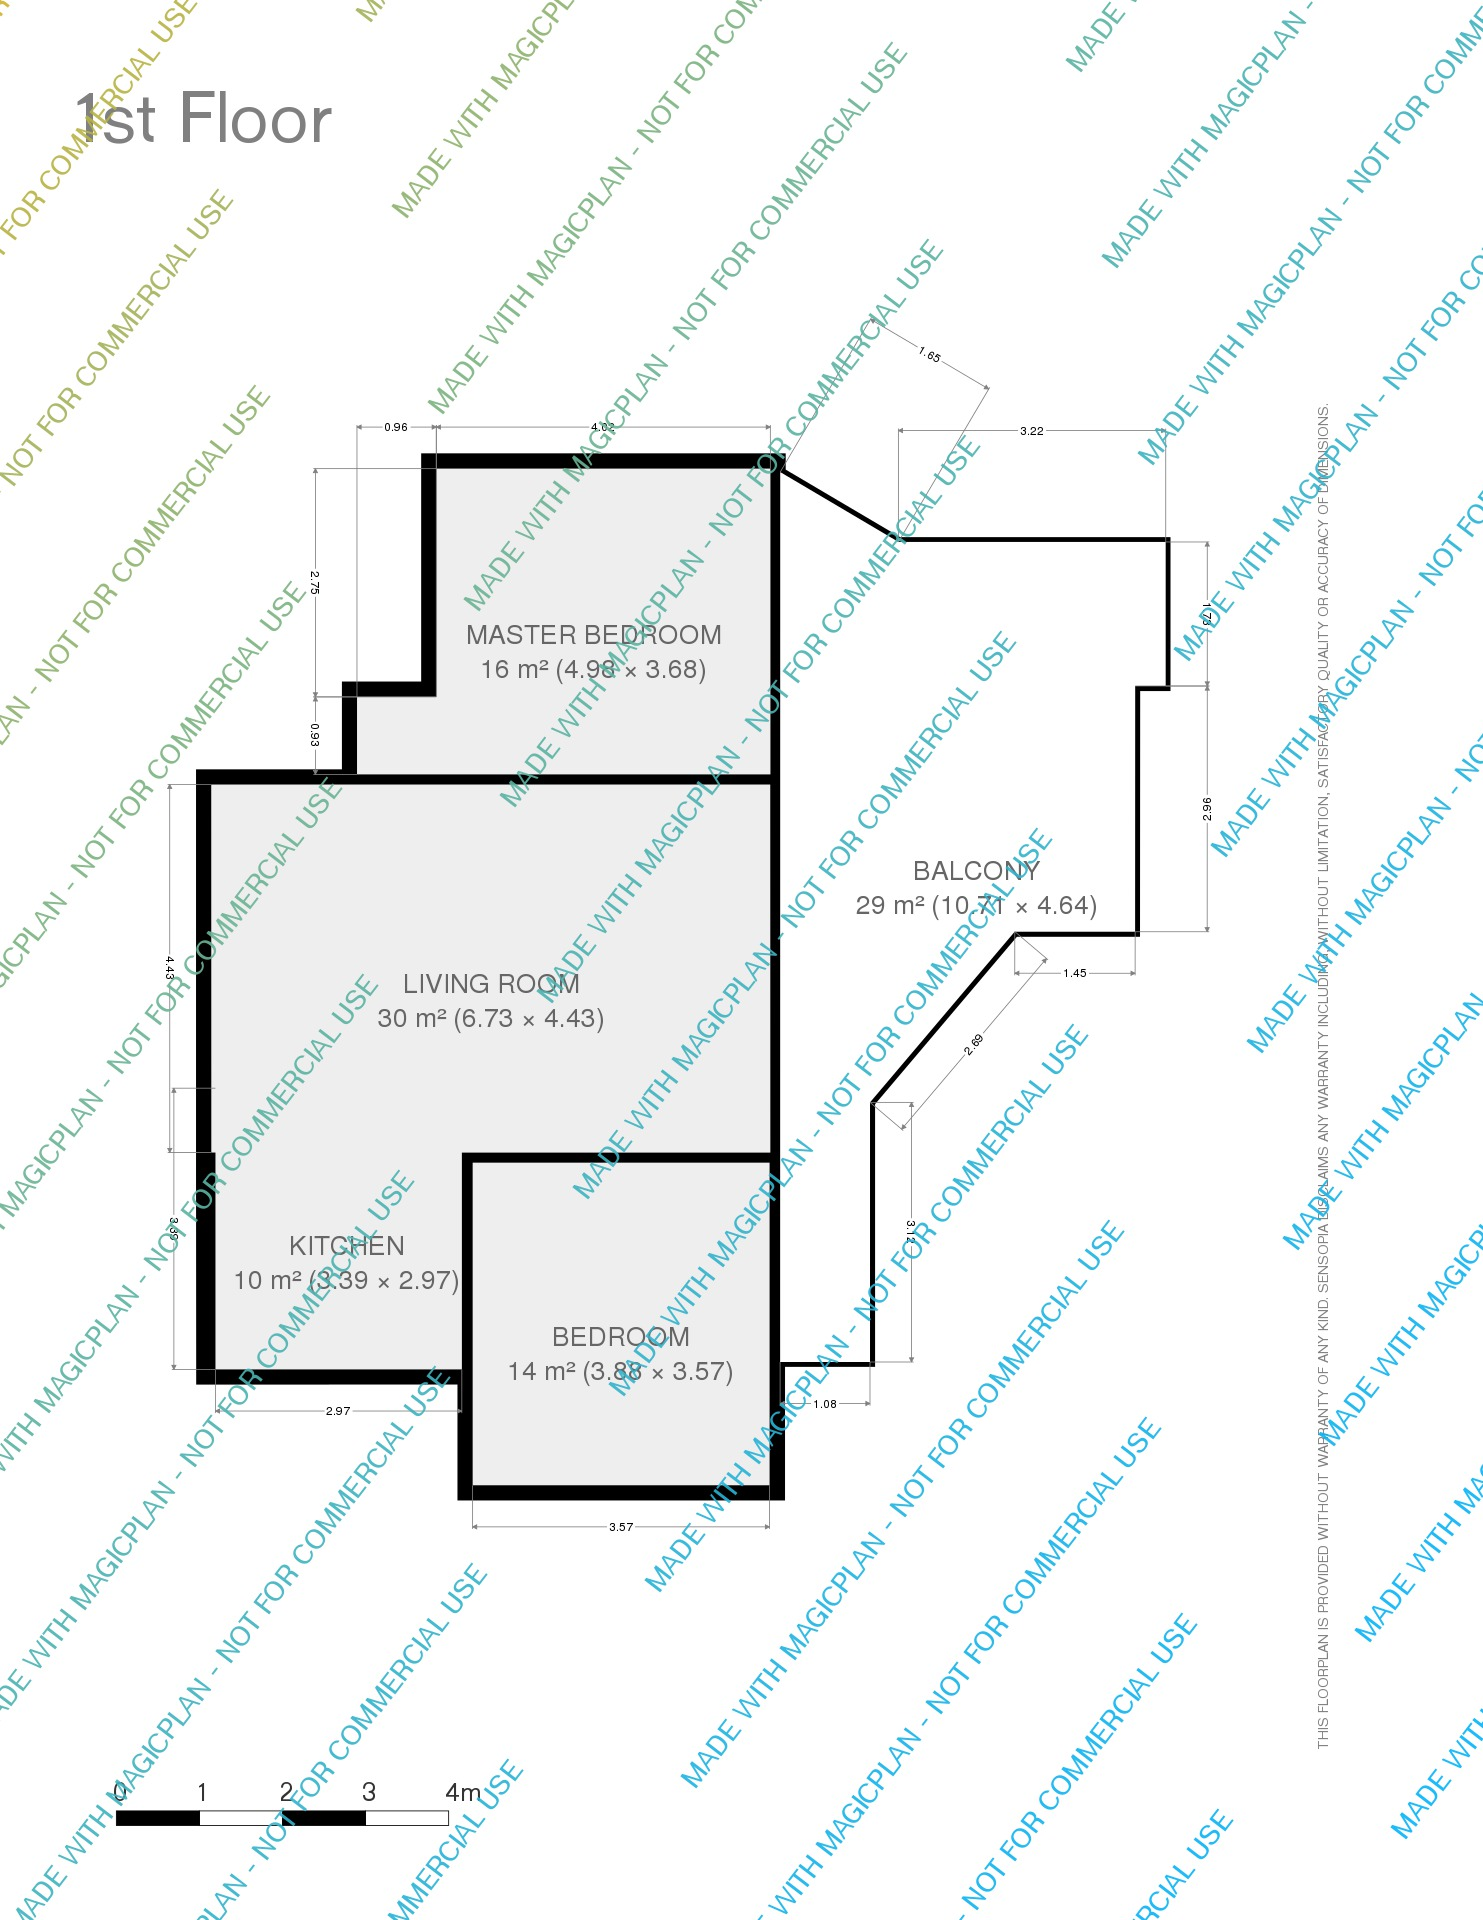 Plan 1 - 1st Floor